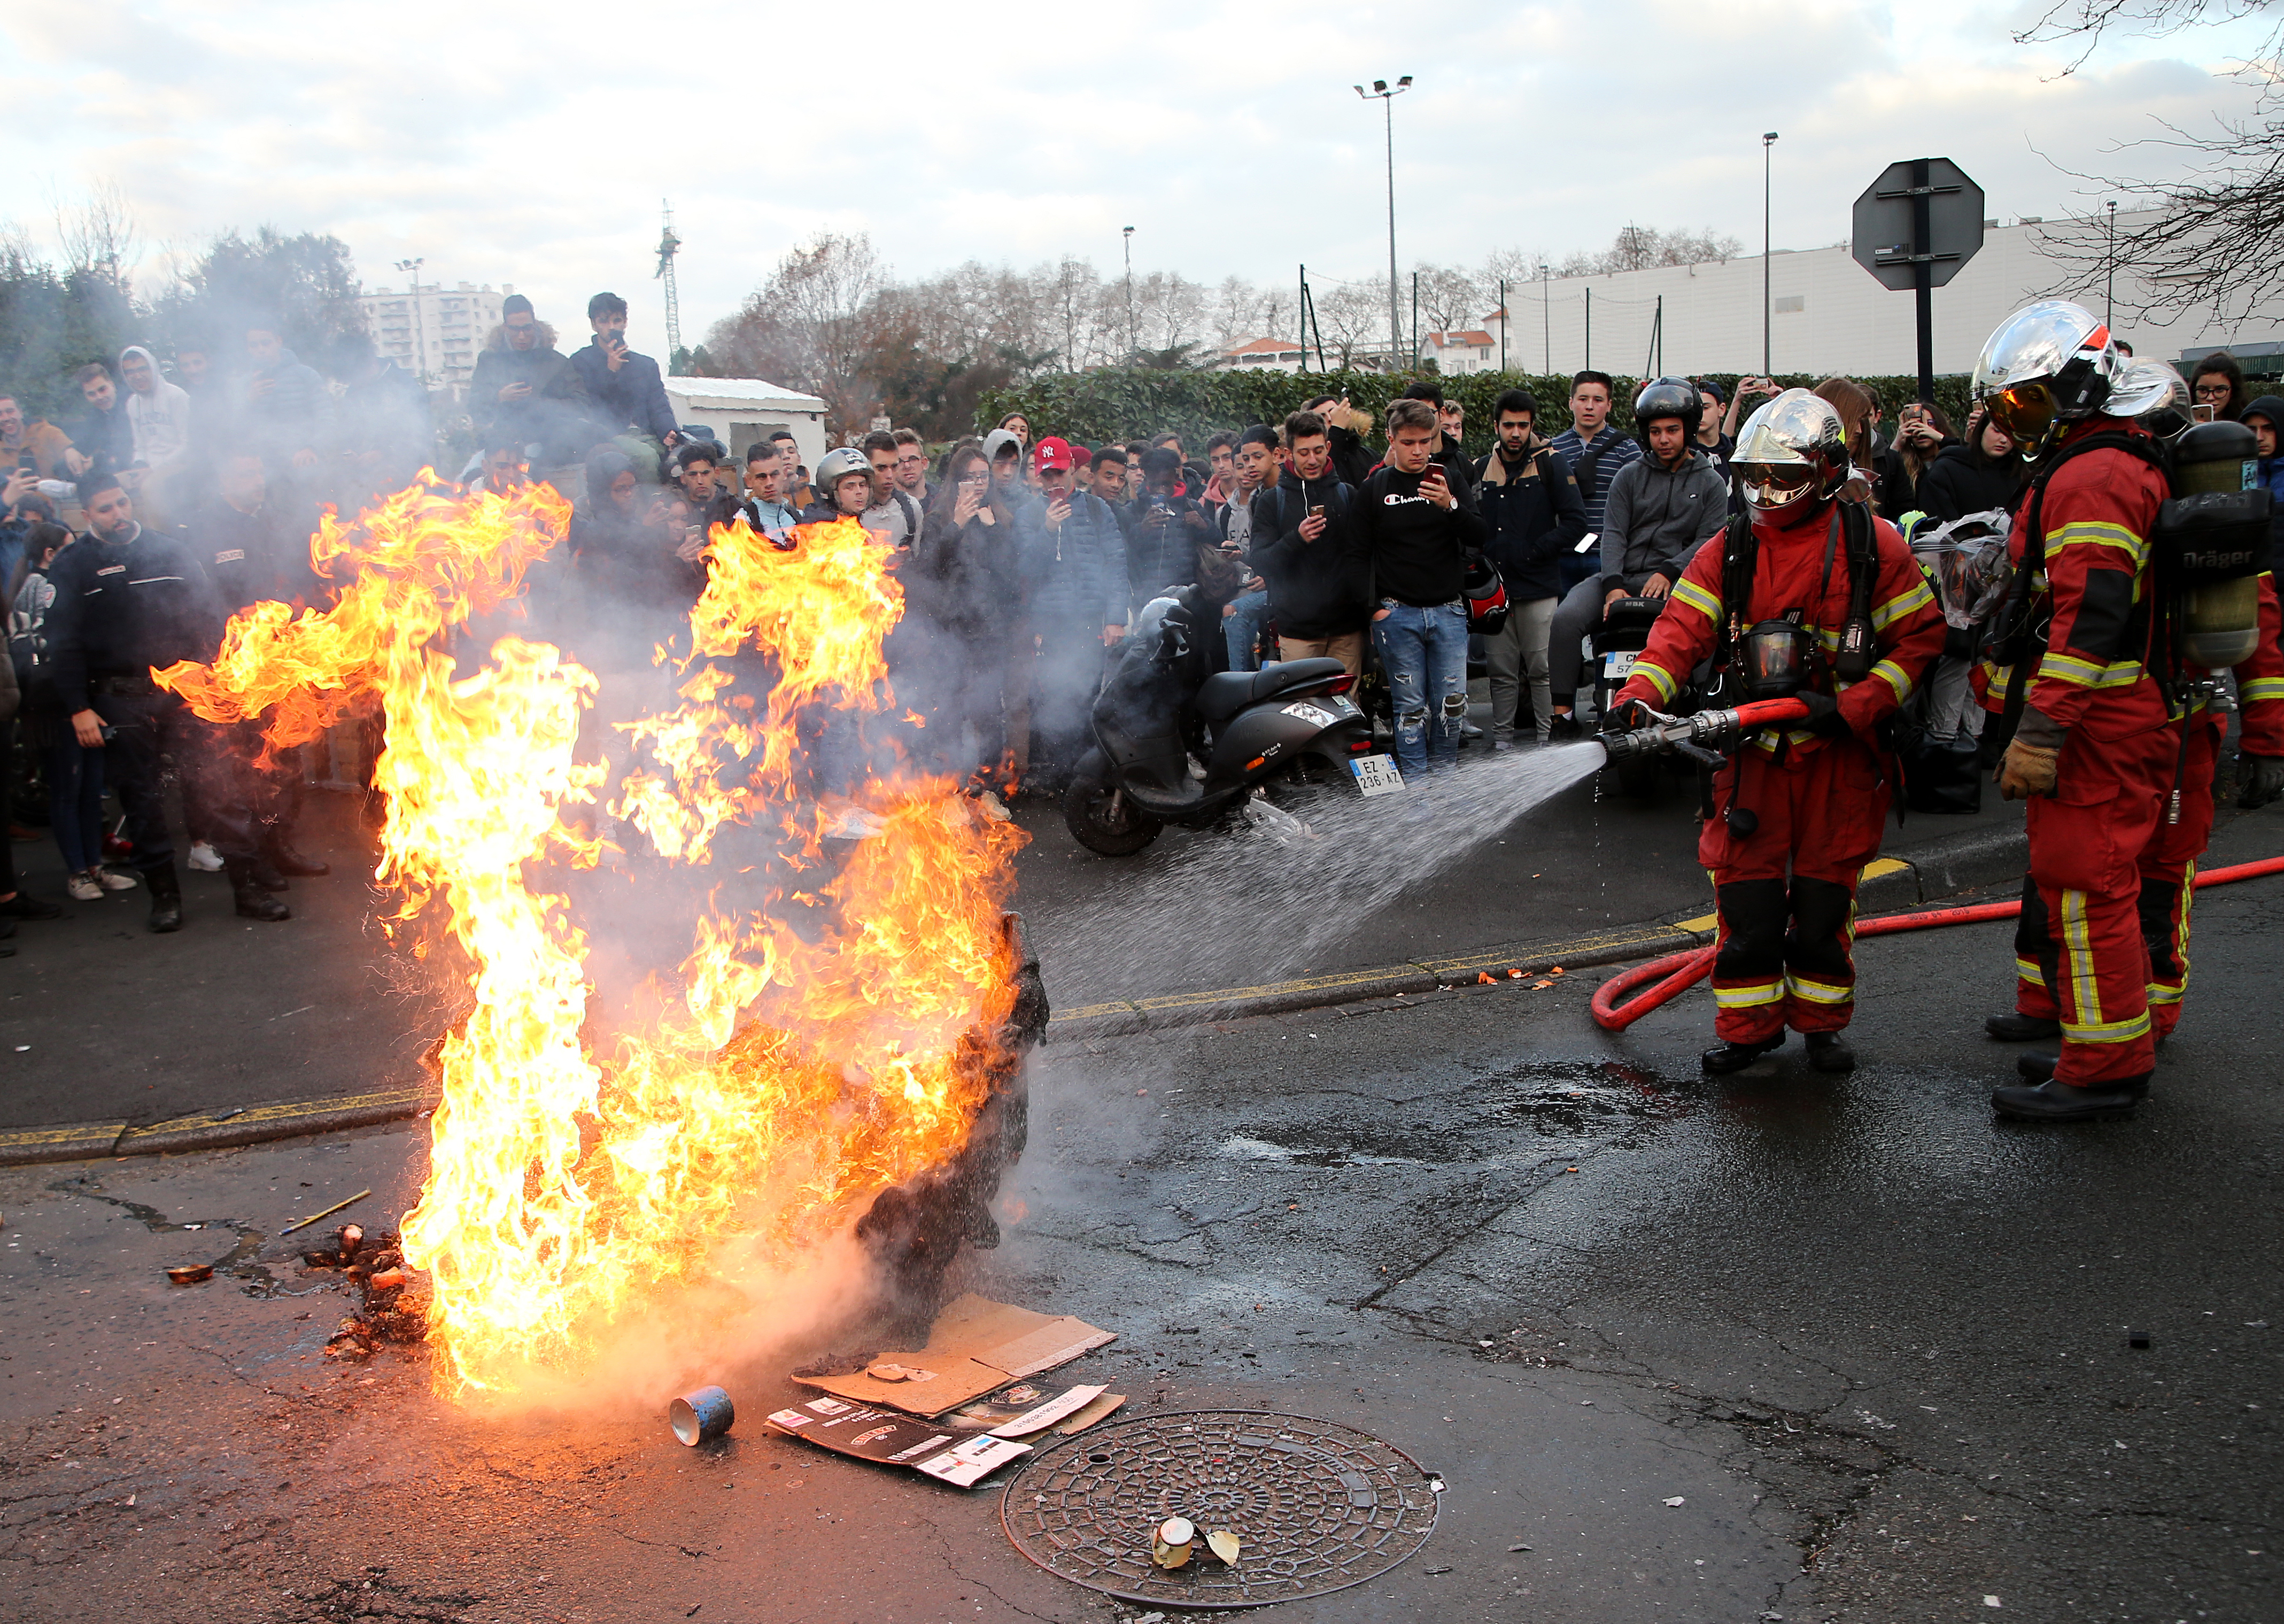 Friefighters turn off fire on a burning trash bin outside a school in Bayonne, southwestern France, Thursday, Dec.6, 2018. Protesting students are disrupting schools and universities Thursday, and drivers are still blocking roads around France, now demanding broader tax cuts and government aid. (AP Photo/Bob Edme)